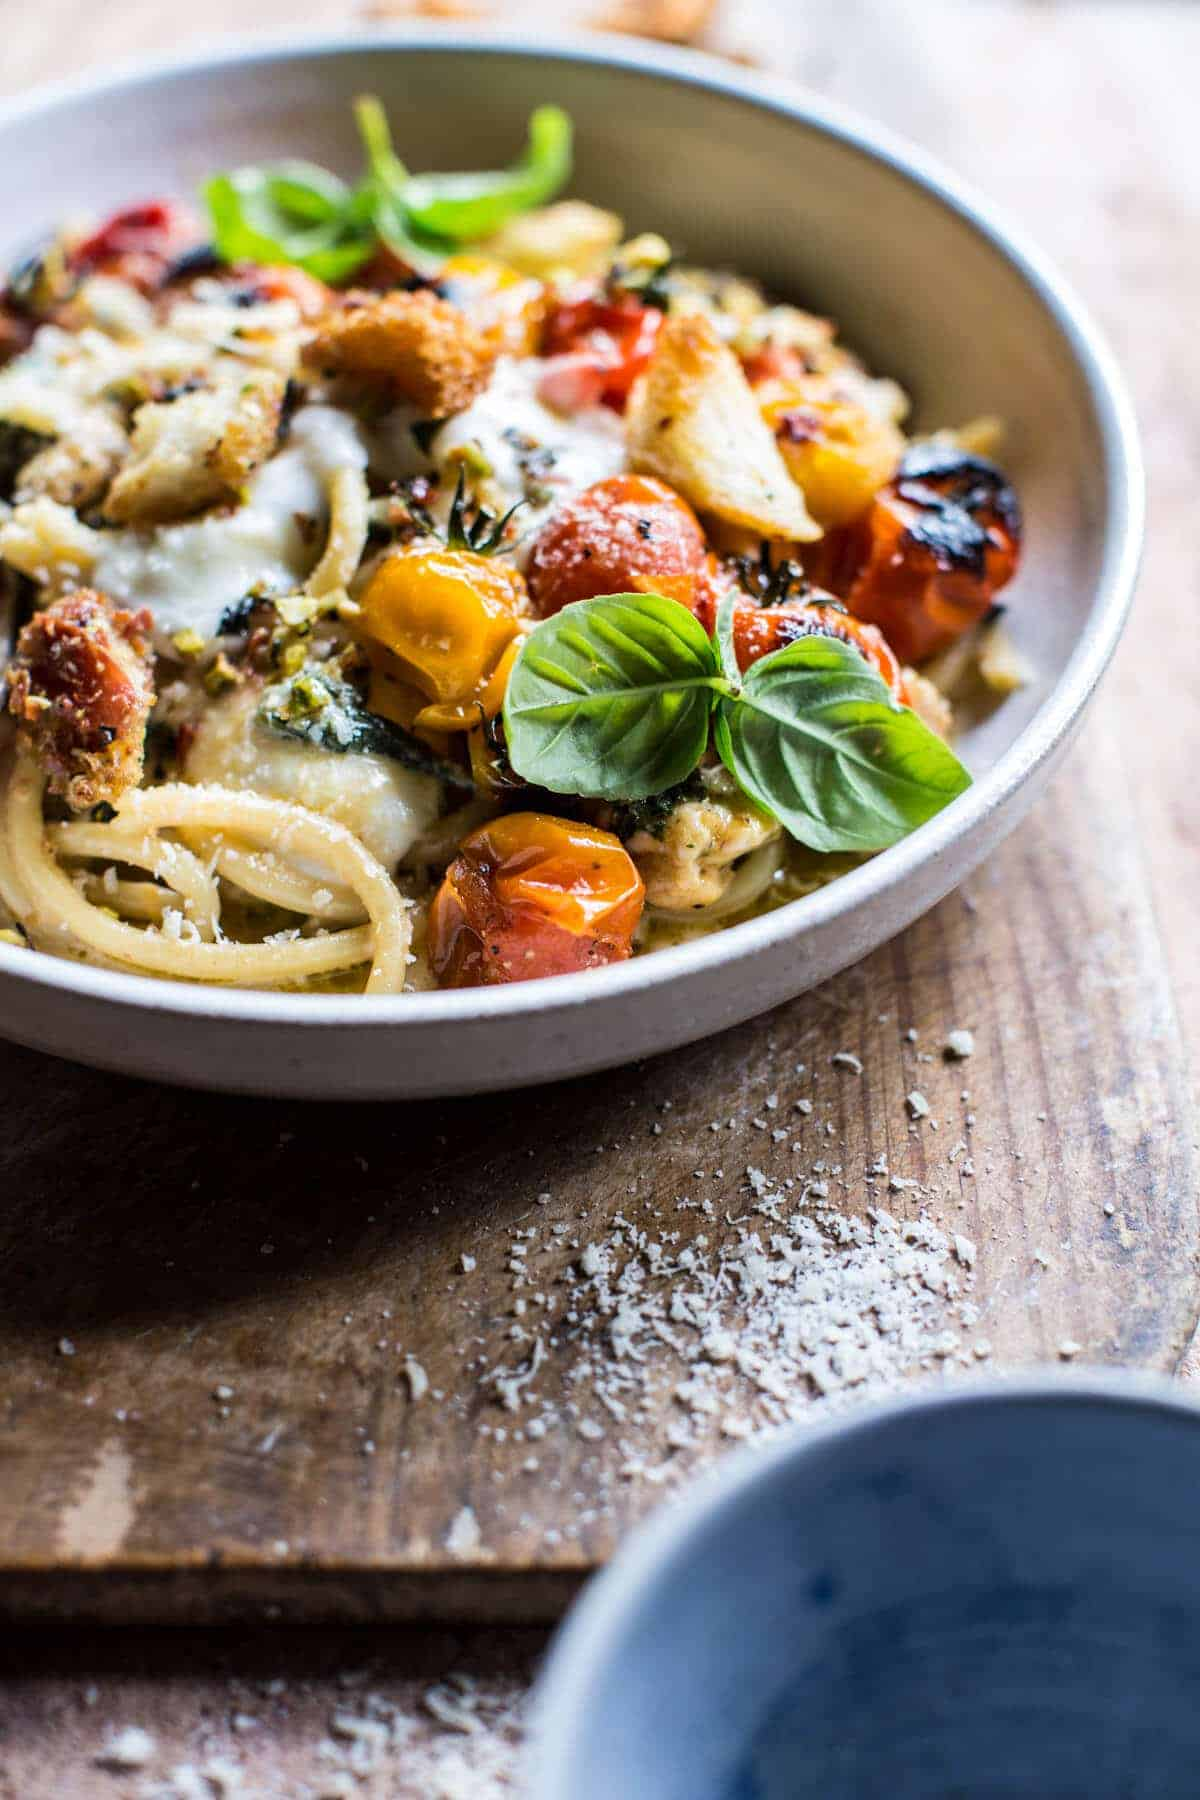 Charred Tomato Basil Chicken Florentine Pasta with Herb Butter Breadcrumbs | halfbakedharvest.com @hbharvest